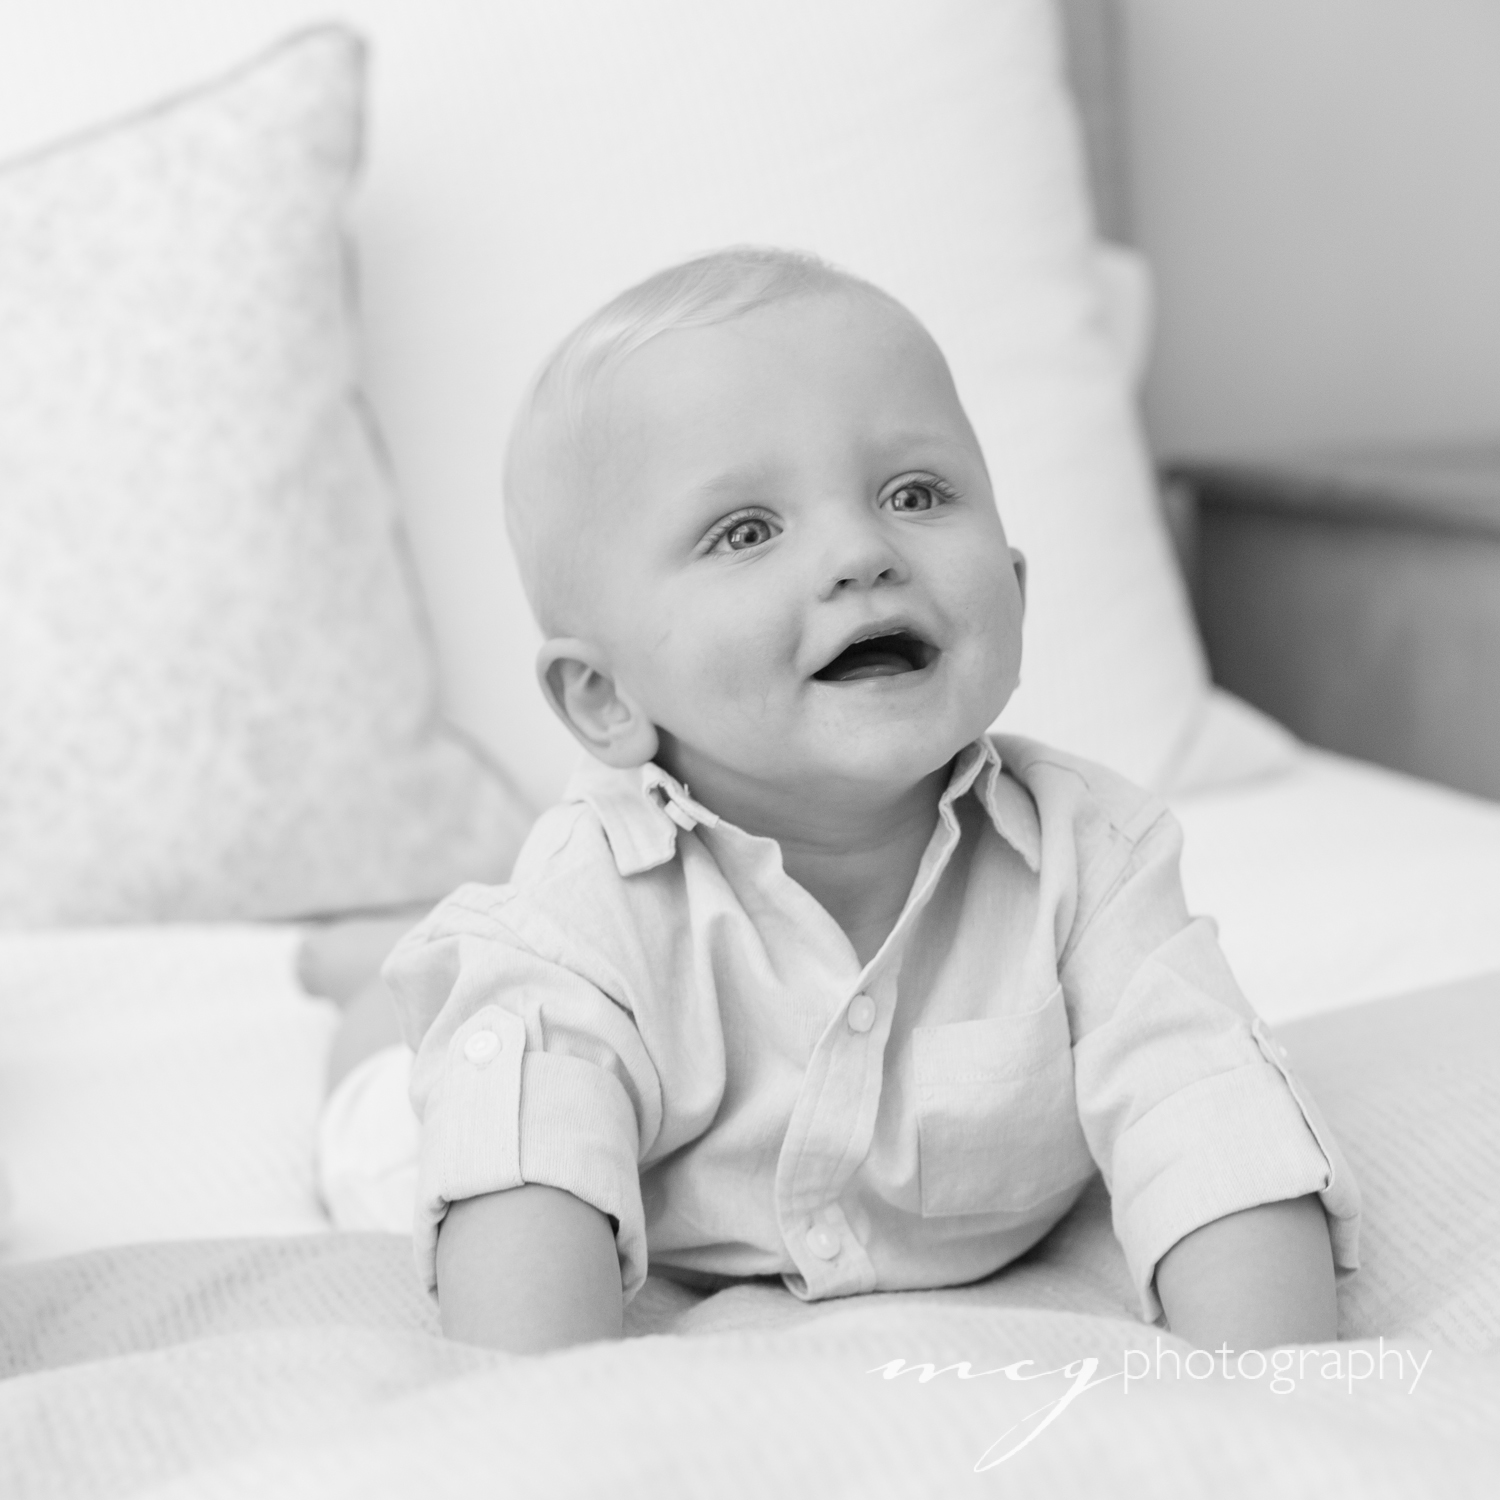 mcg_photography_home_portraits-little_brother.jpg